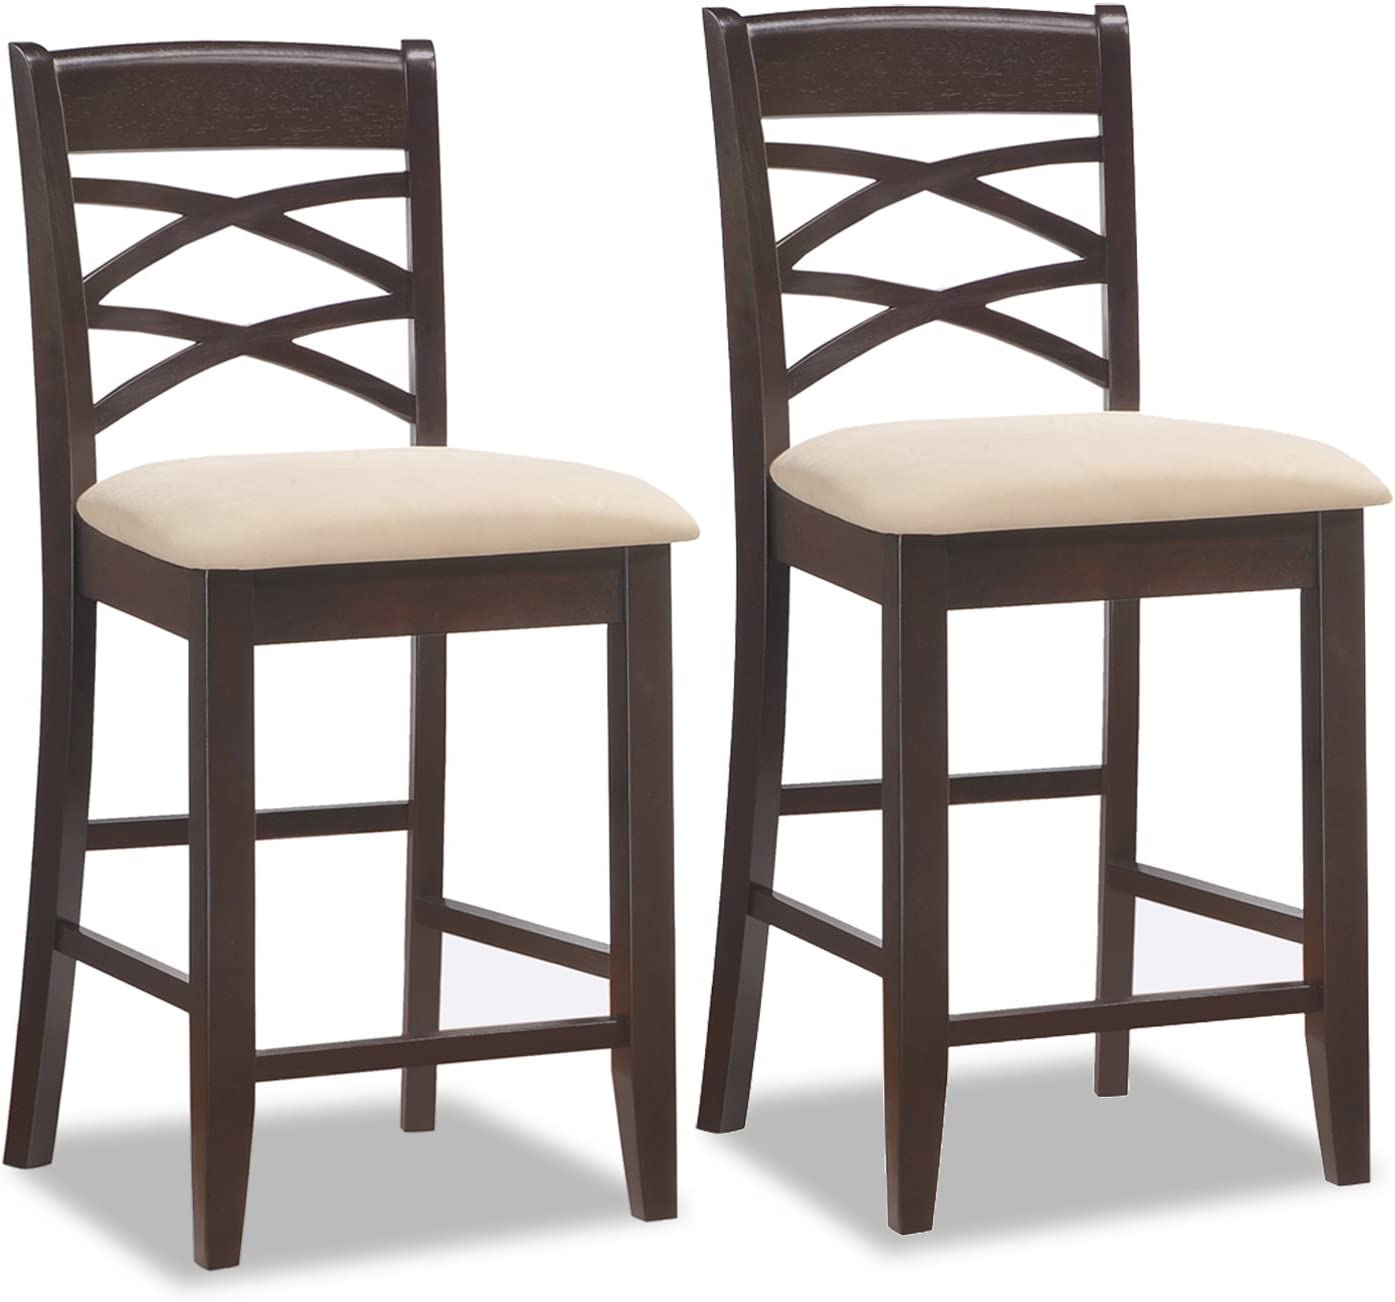 Leick Wood Double Cross Back Counter Height Bar Stool with Beige Microfiber Seat, Set of 2